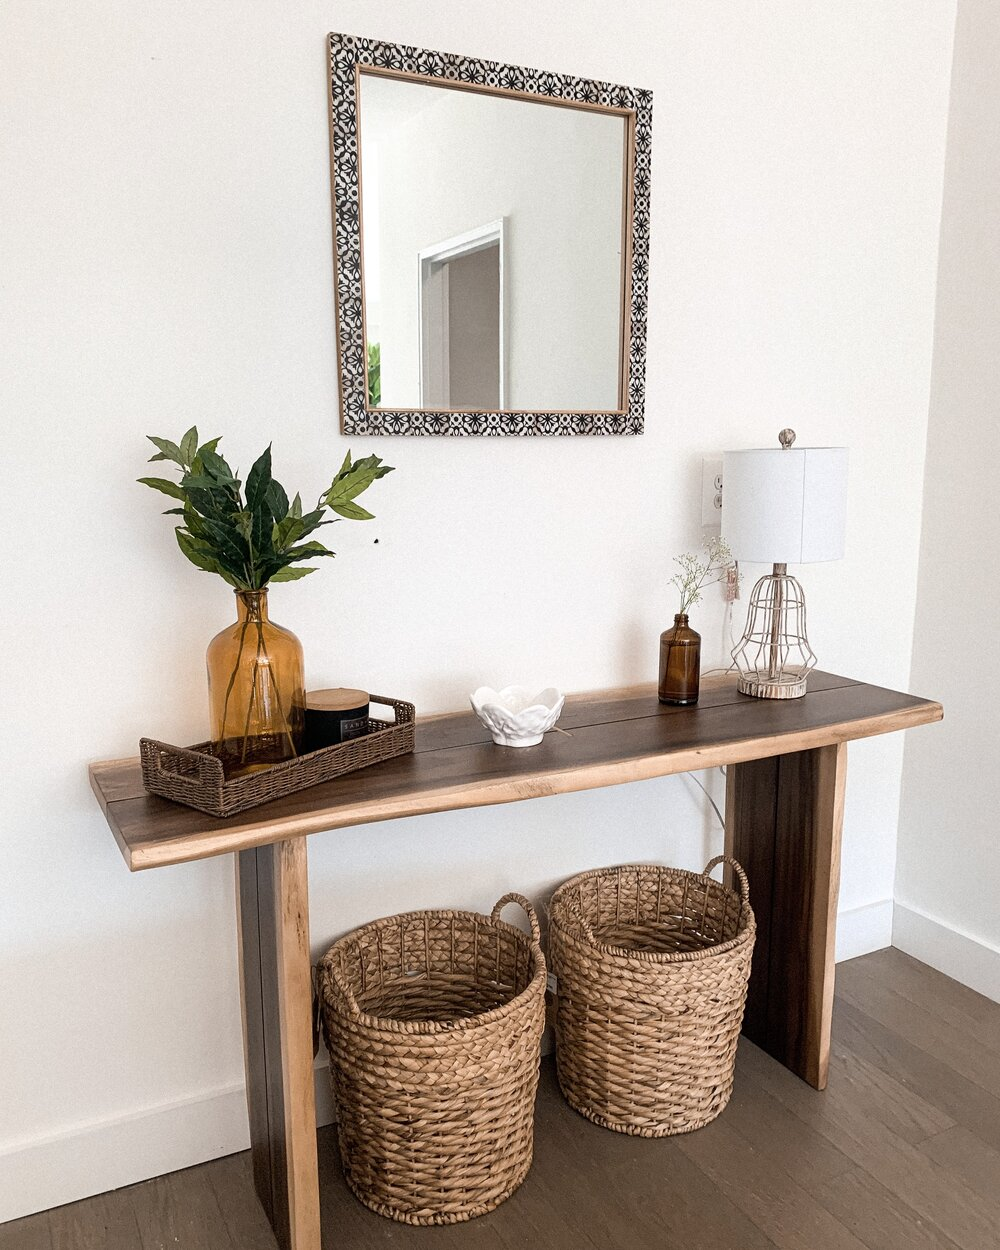 Styling My Small Space Farmhouse Entry Way Sarah Gross Design